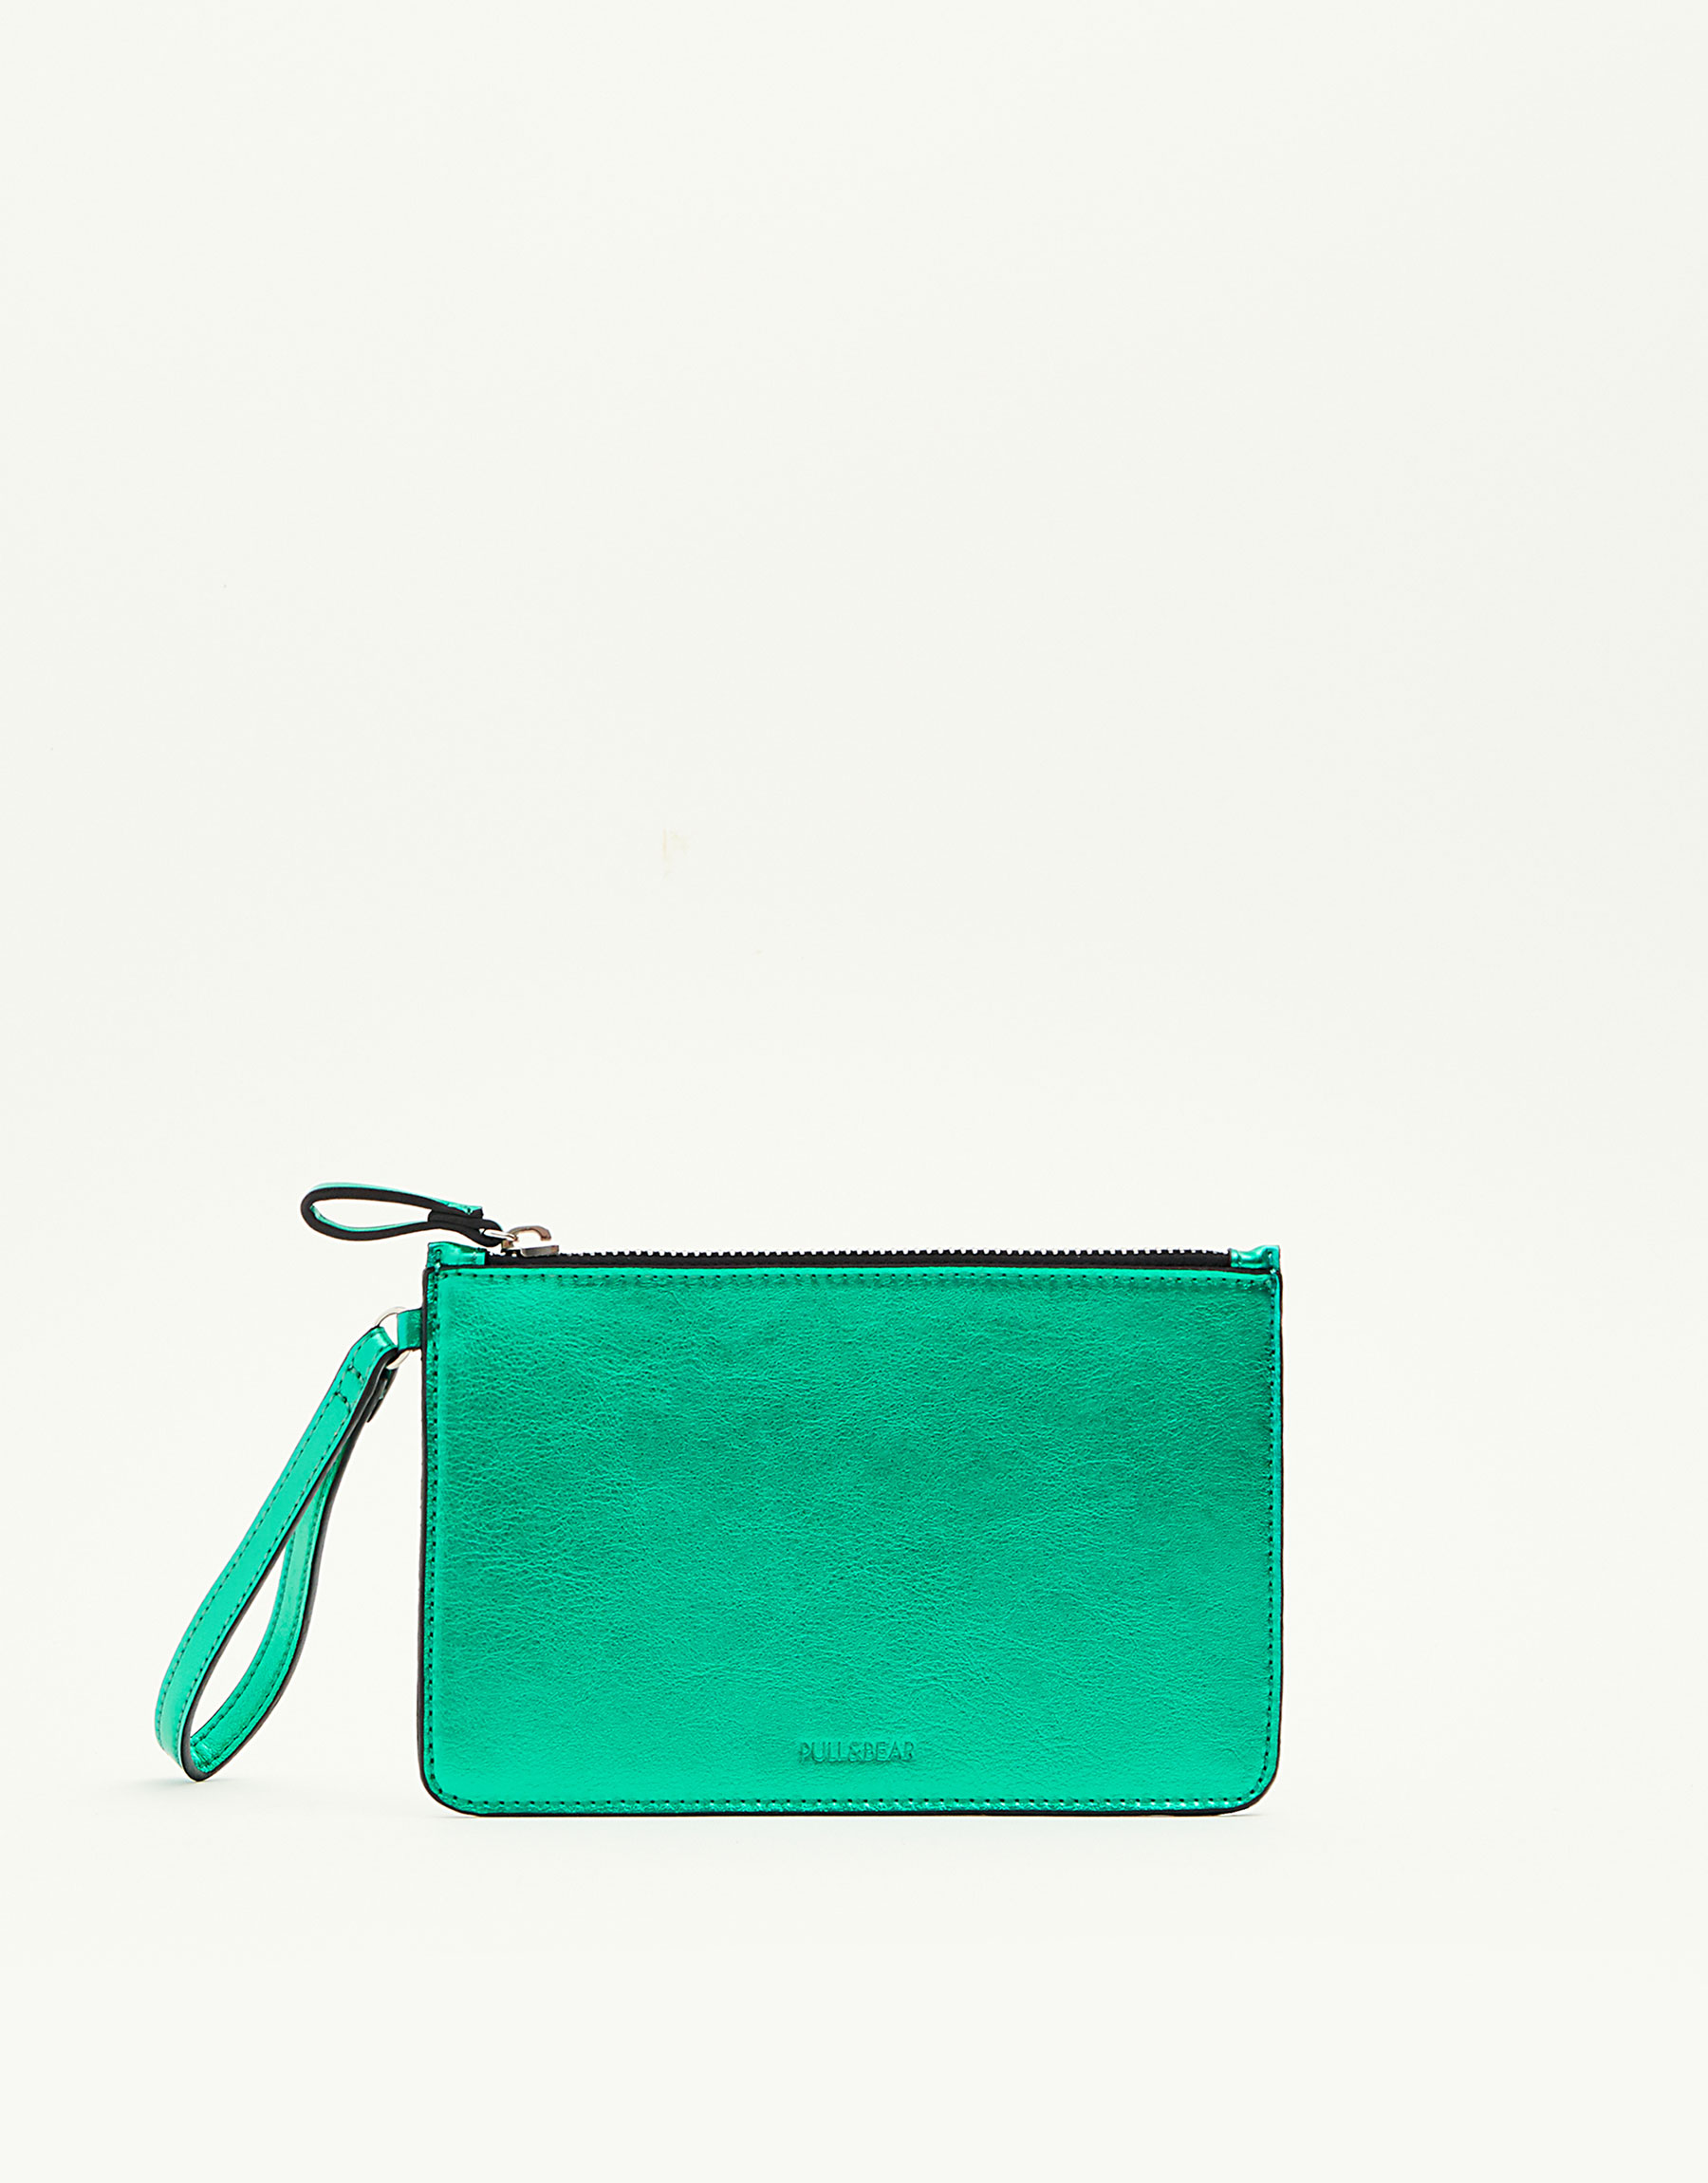 Metallic green purse